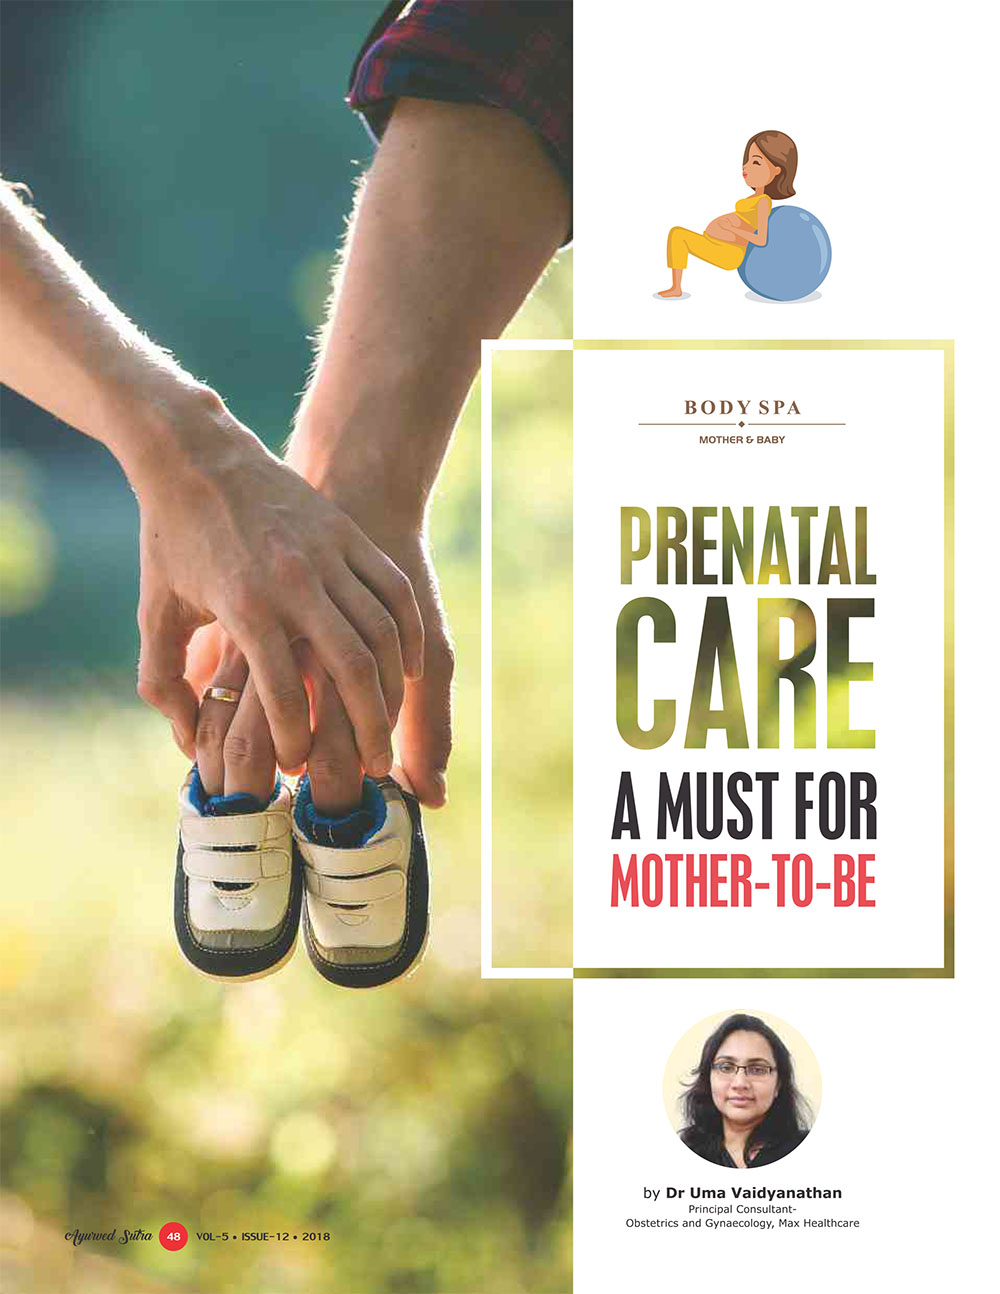 Ayurvedsutra Vol 05 issue 12 50 - Prenatal Care: A Must for Mother-to-be